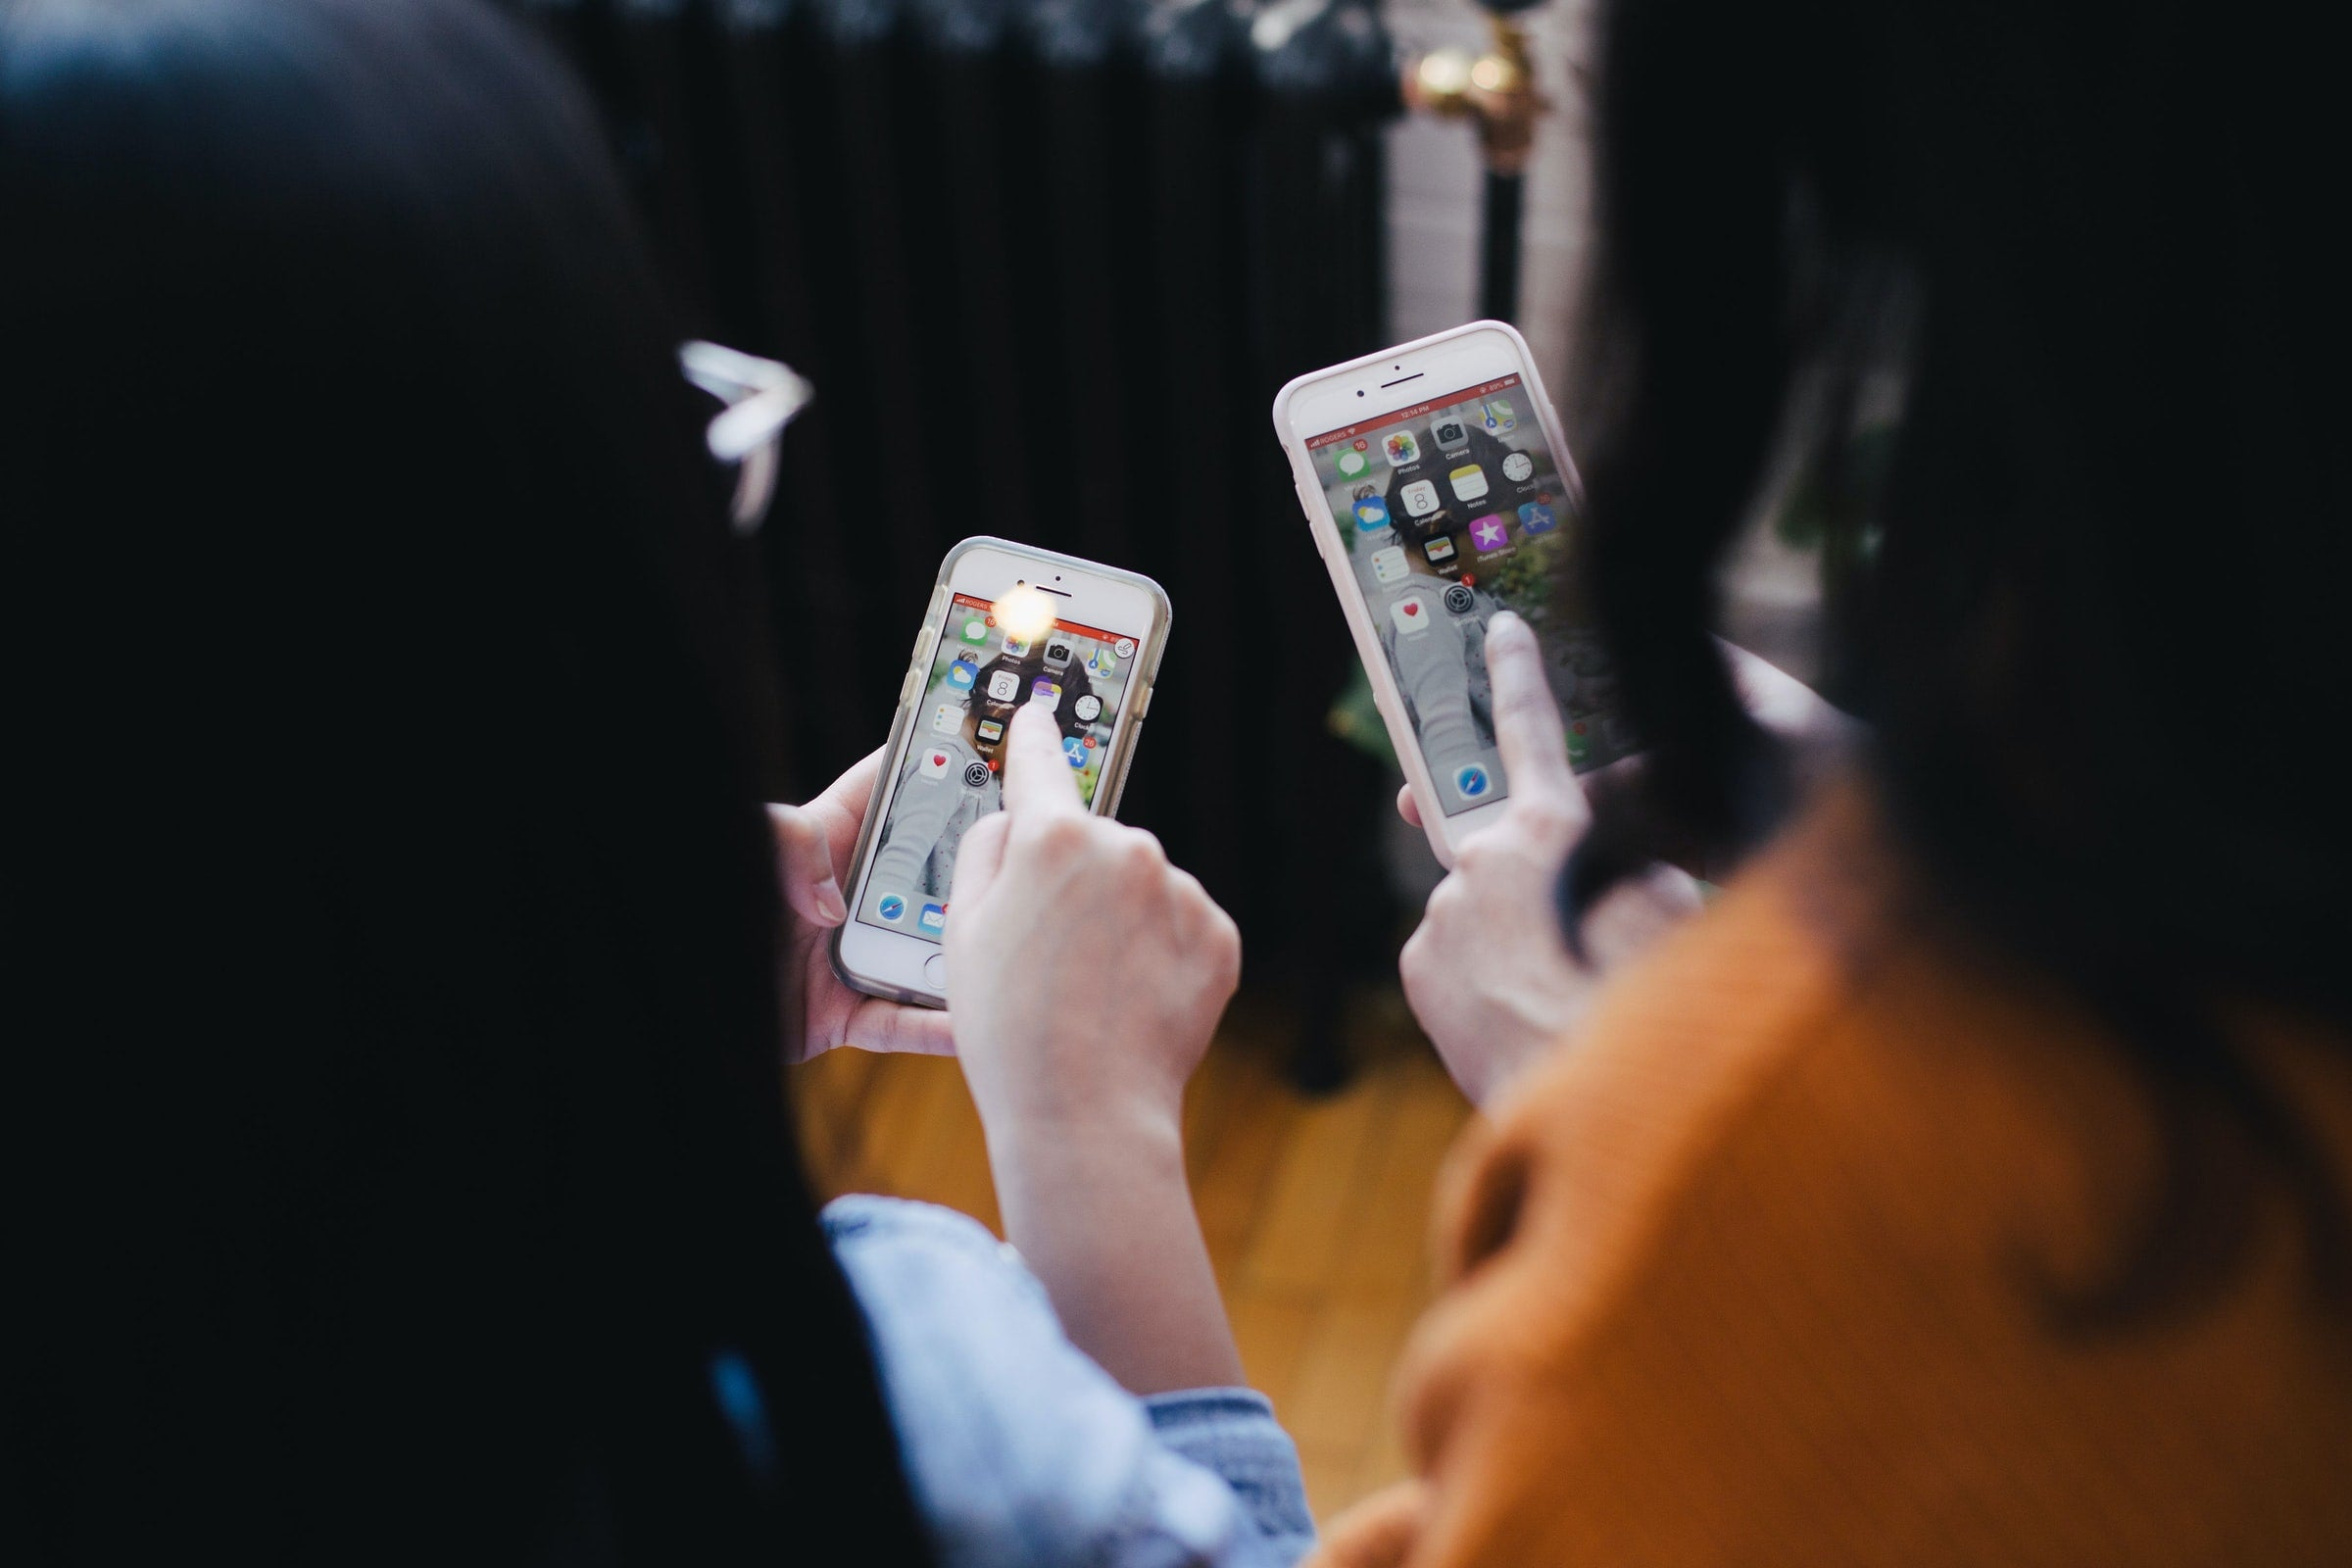 Two people facing away from the camera while pointing at their iPhones.